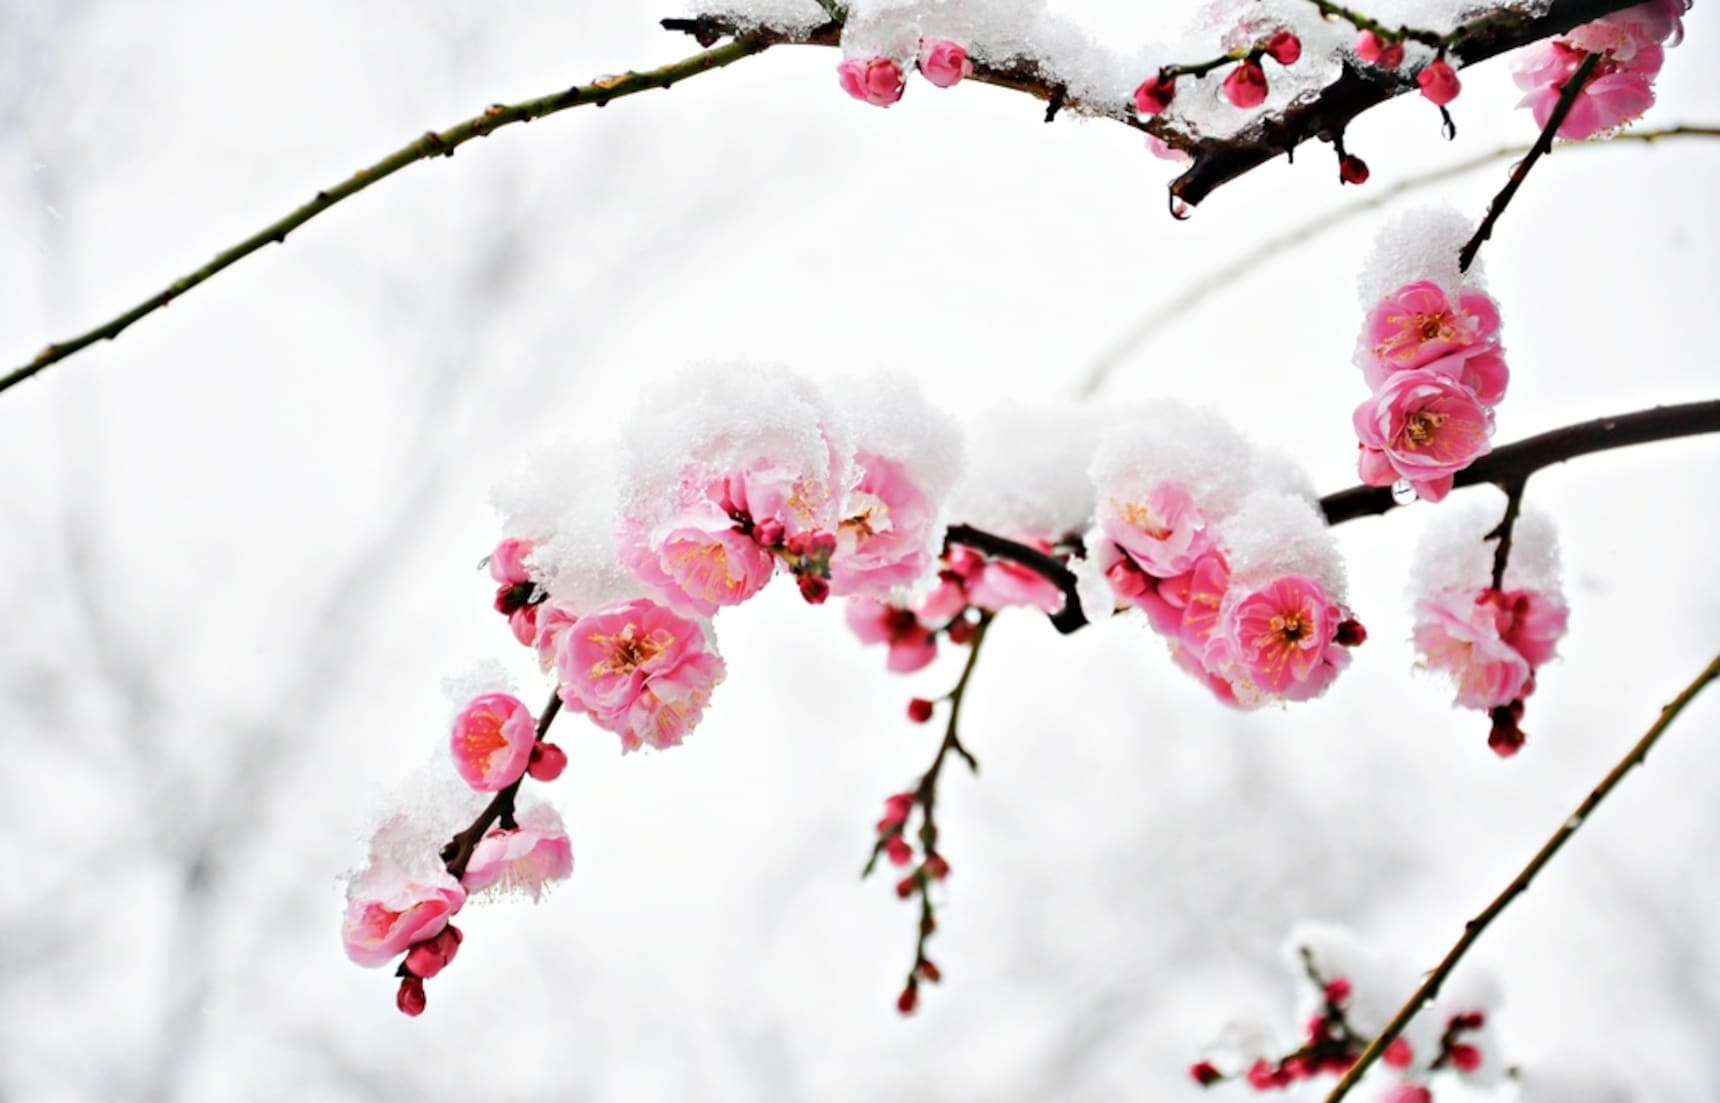 Snow & Sakura Make for Incredible Hanami